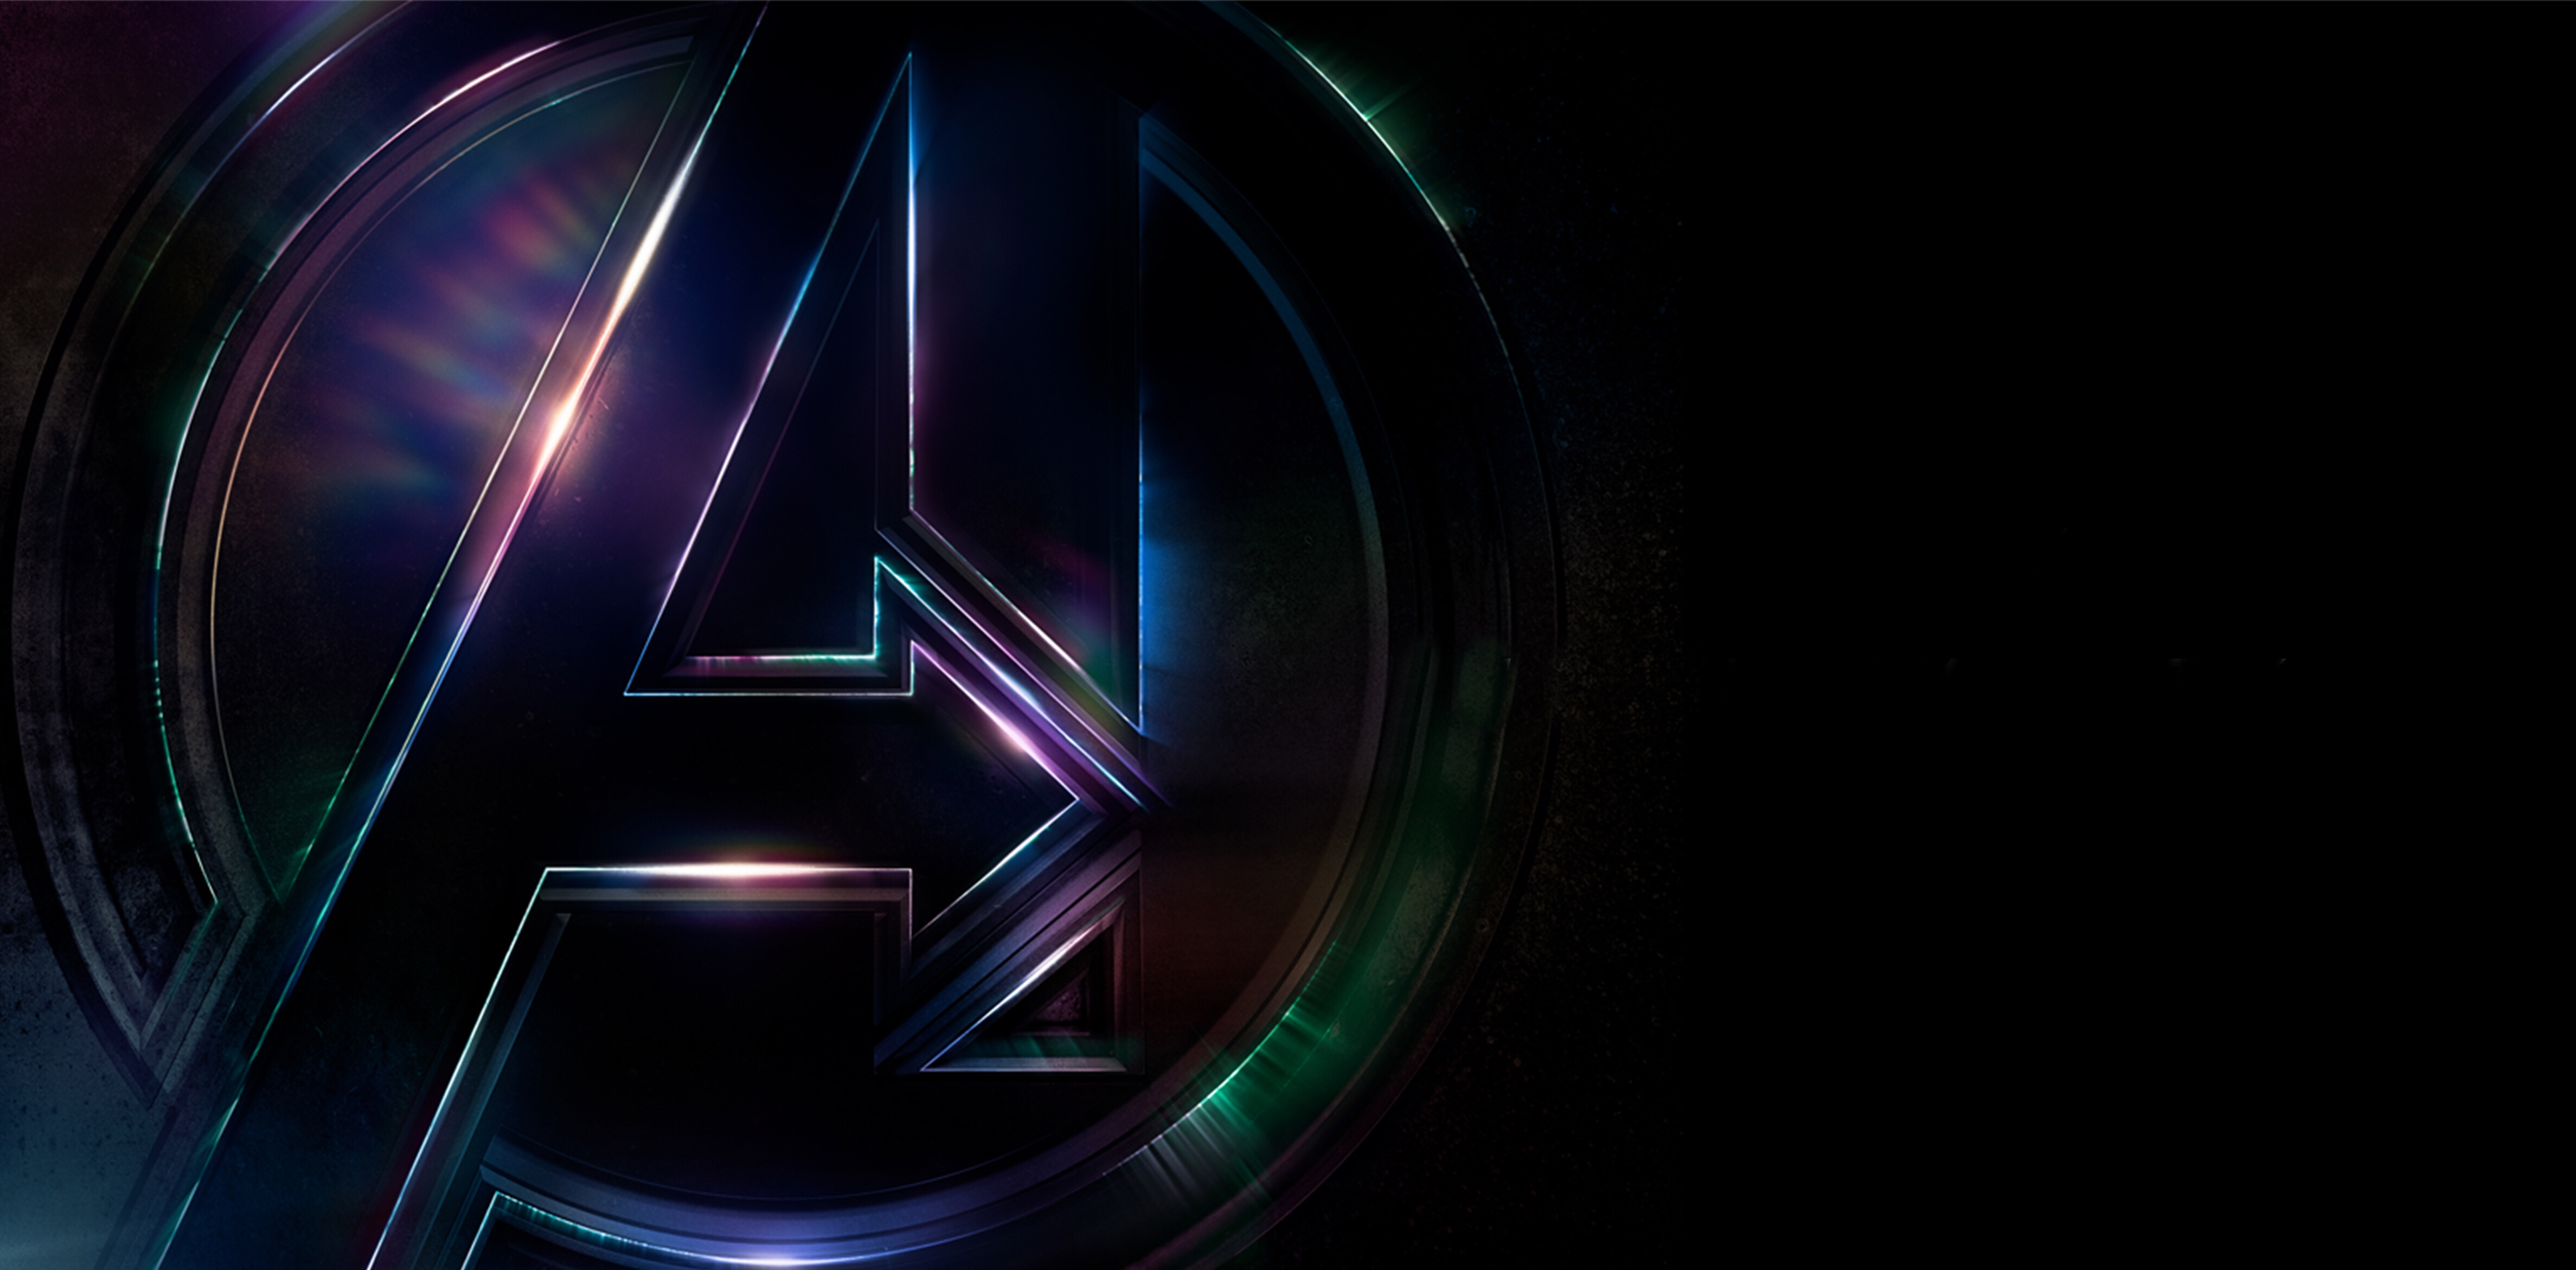 Avengers Infinity War Wallpapers Collection Wallpapers For Tech